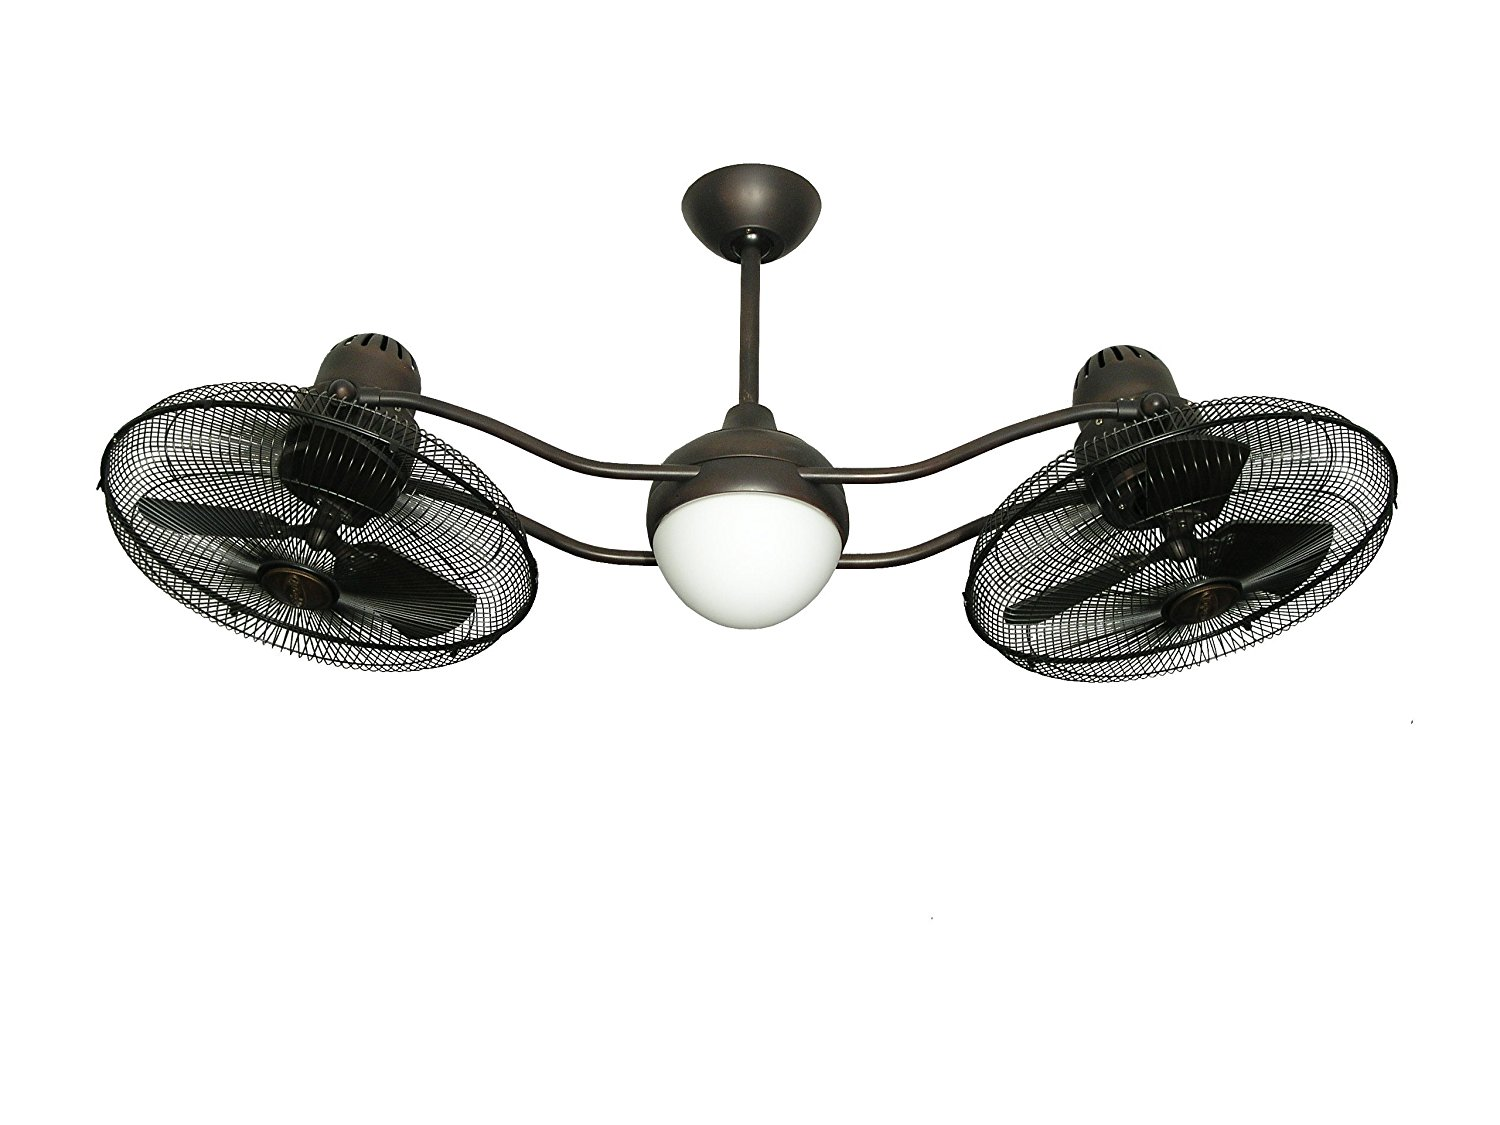 Double Fan Ceiling Fan With Light Double Ceiling Fan With Lights For Better Air Movement Homeindec